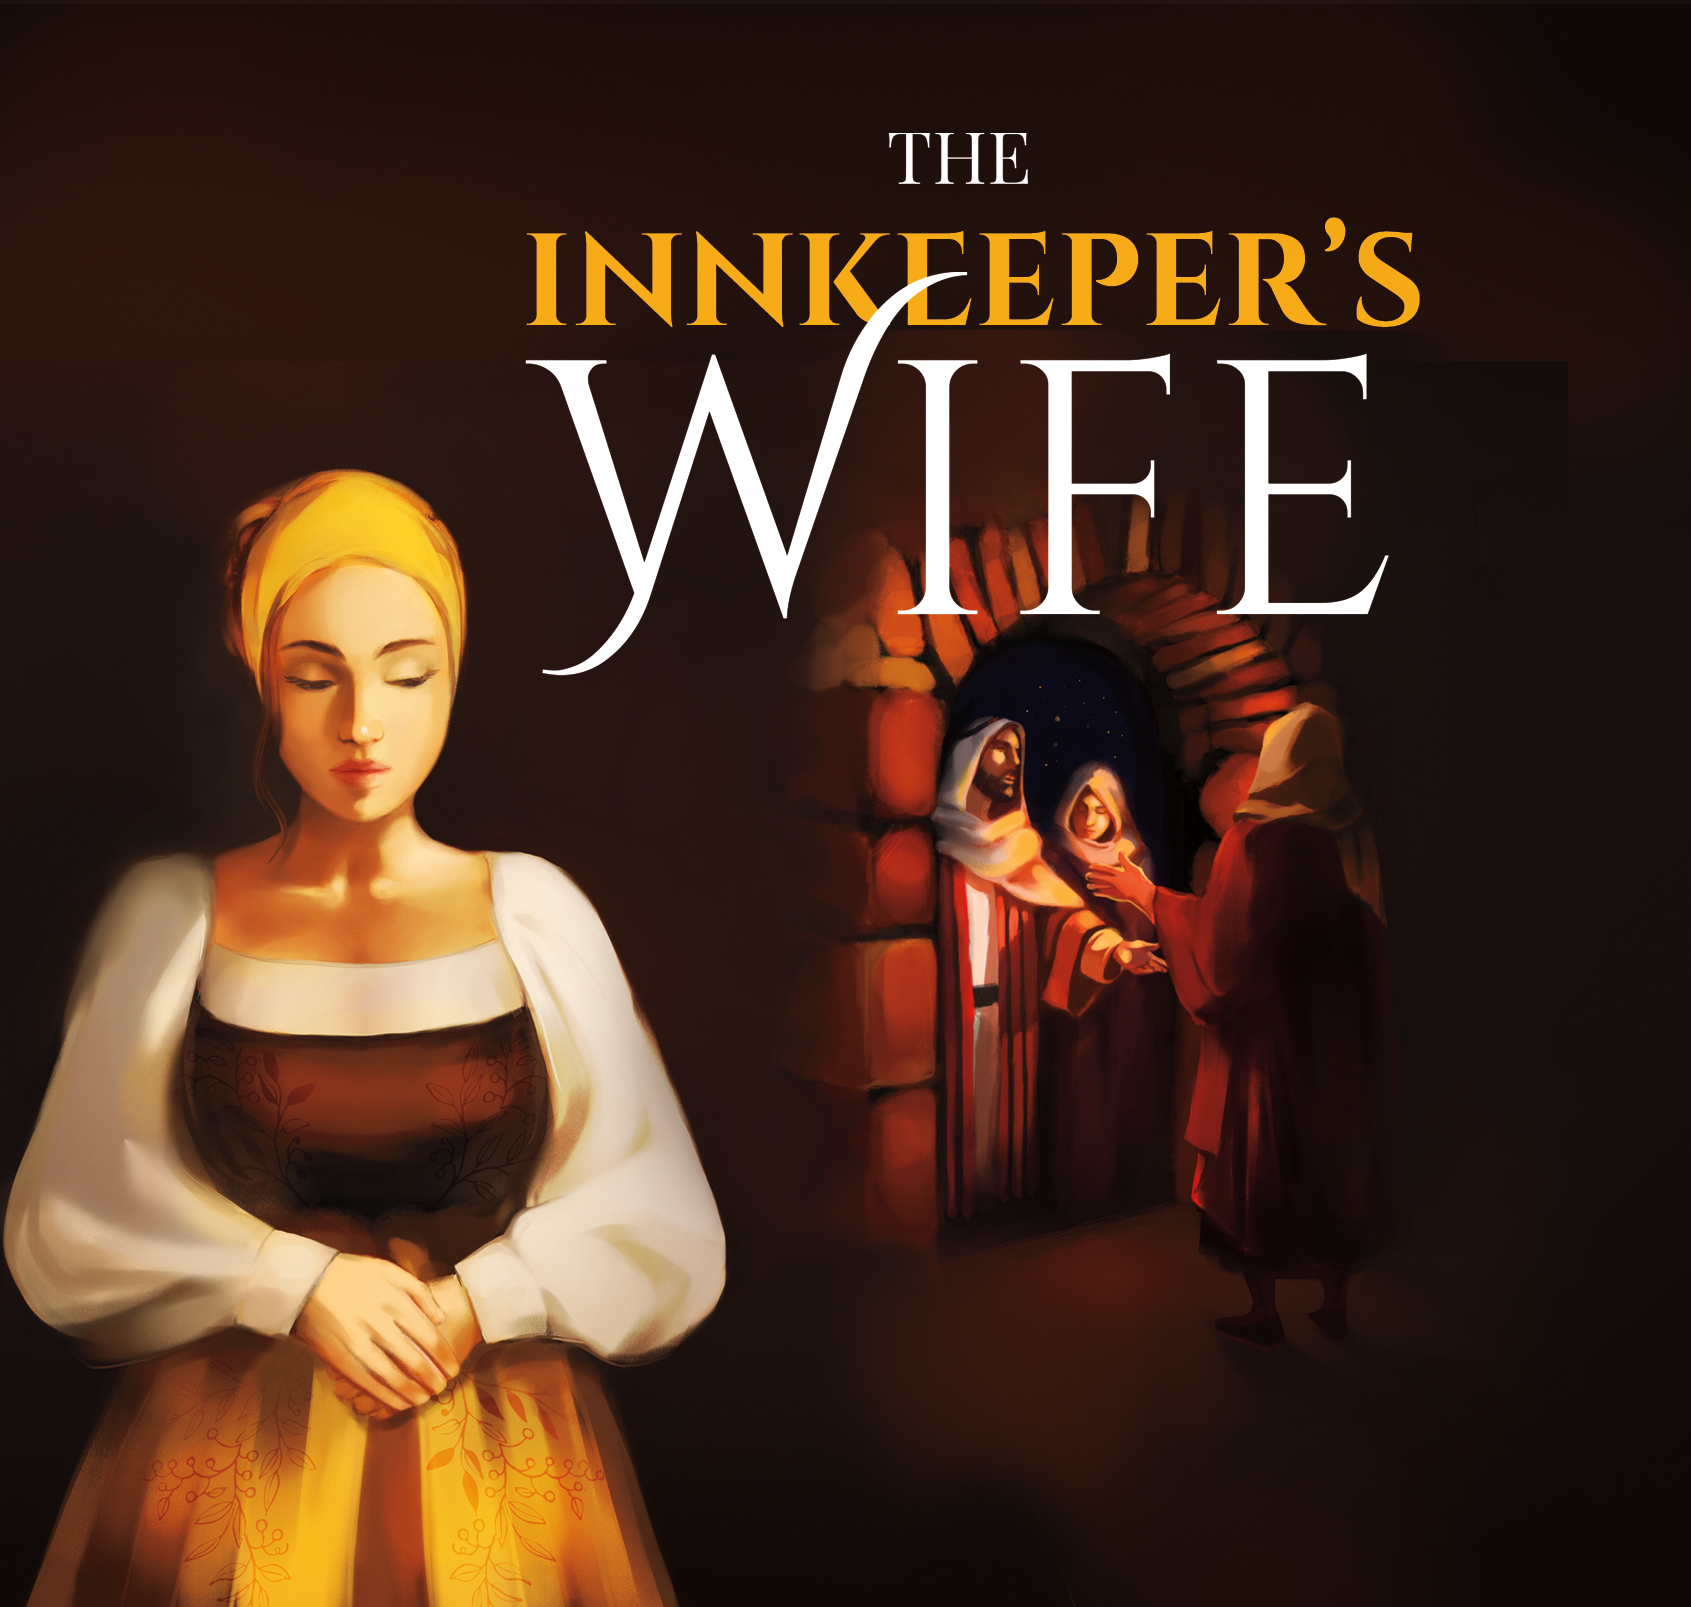 Innkeeper's Wife Musical - CD 00032